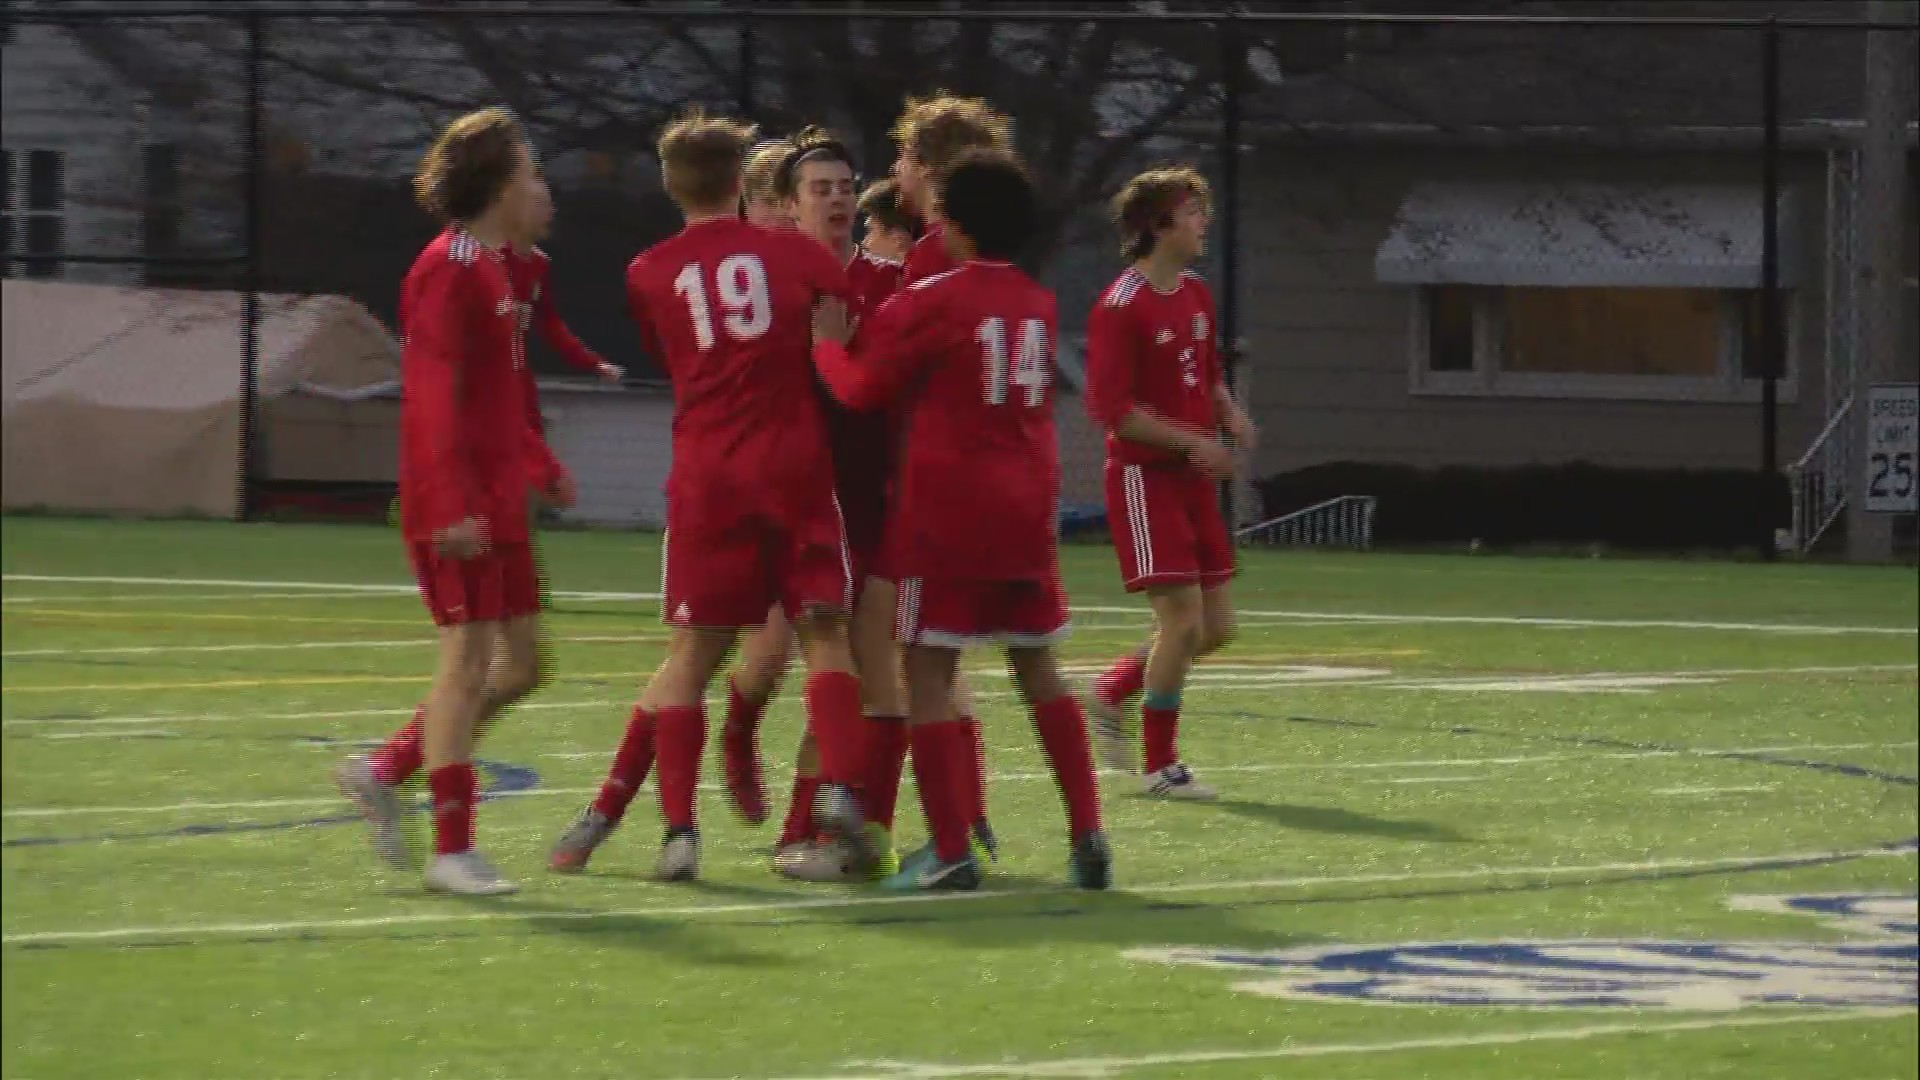 Burkhart tallies game-winner as Assumption beats Central